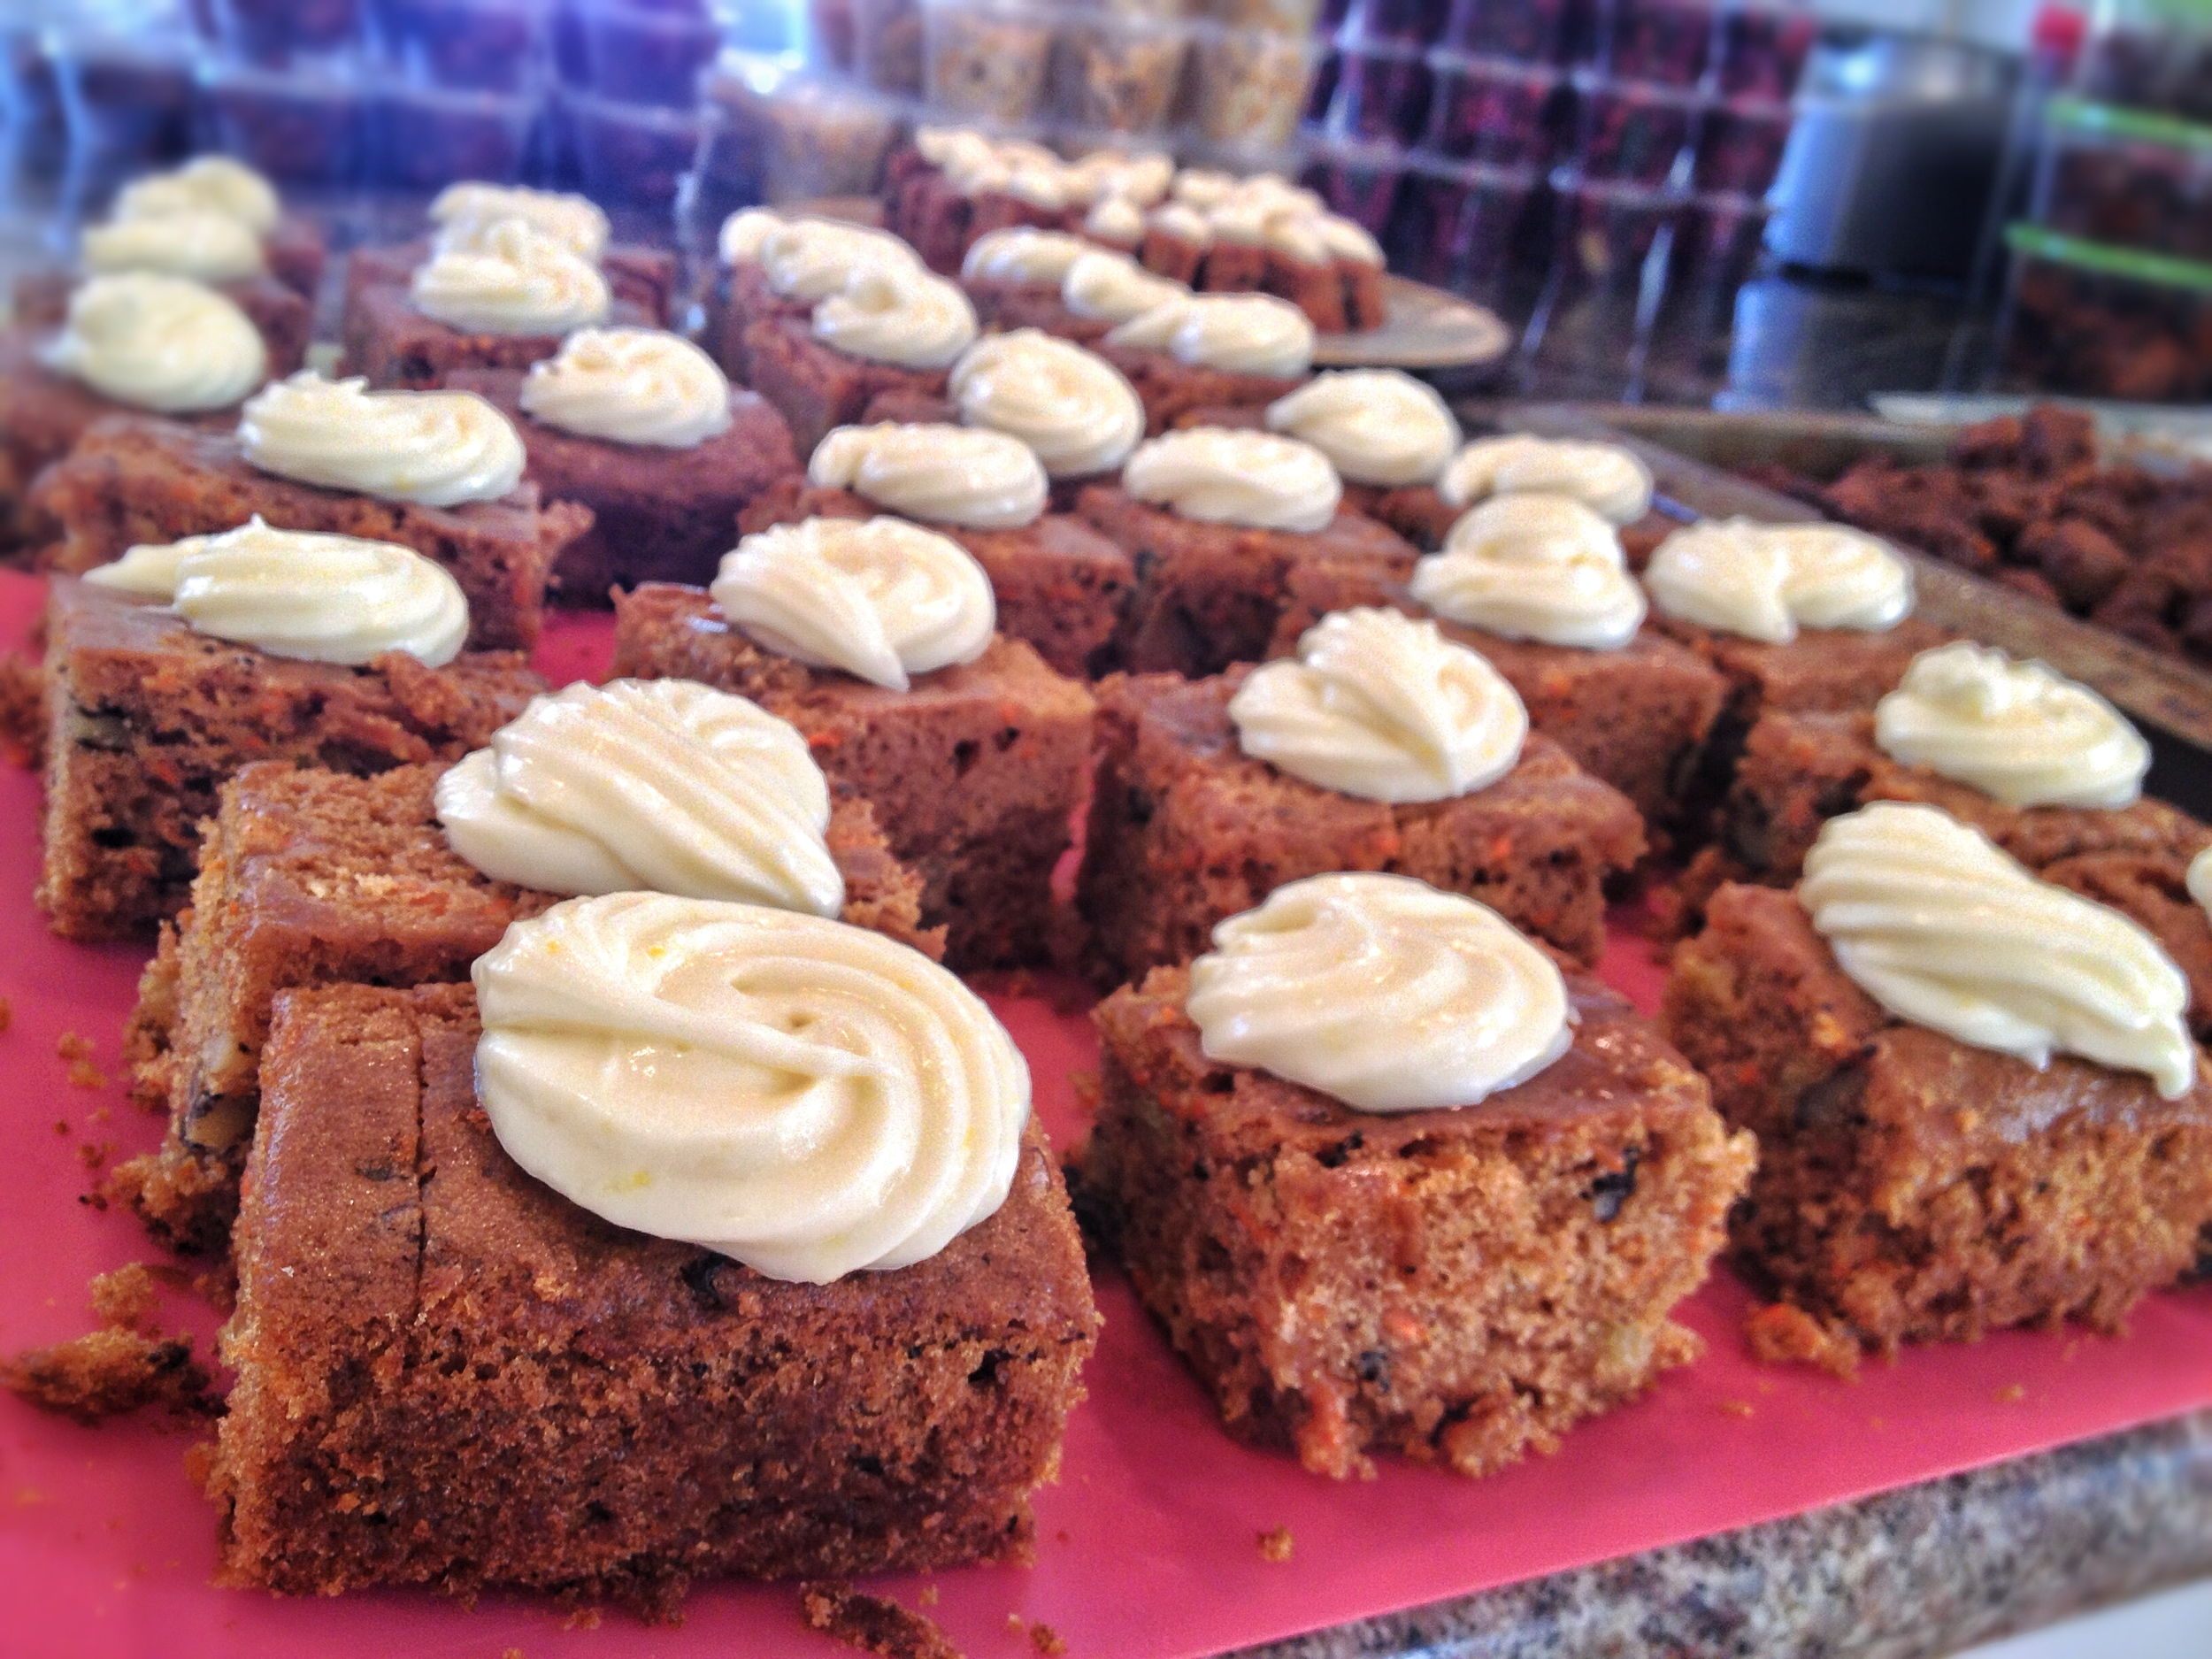 Carrot Cake - Pieces for Catering - RT.jpg